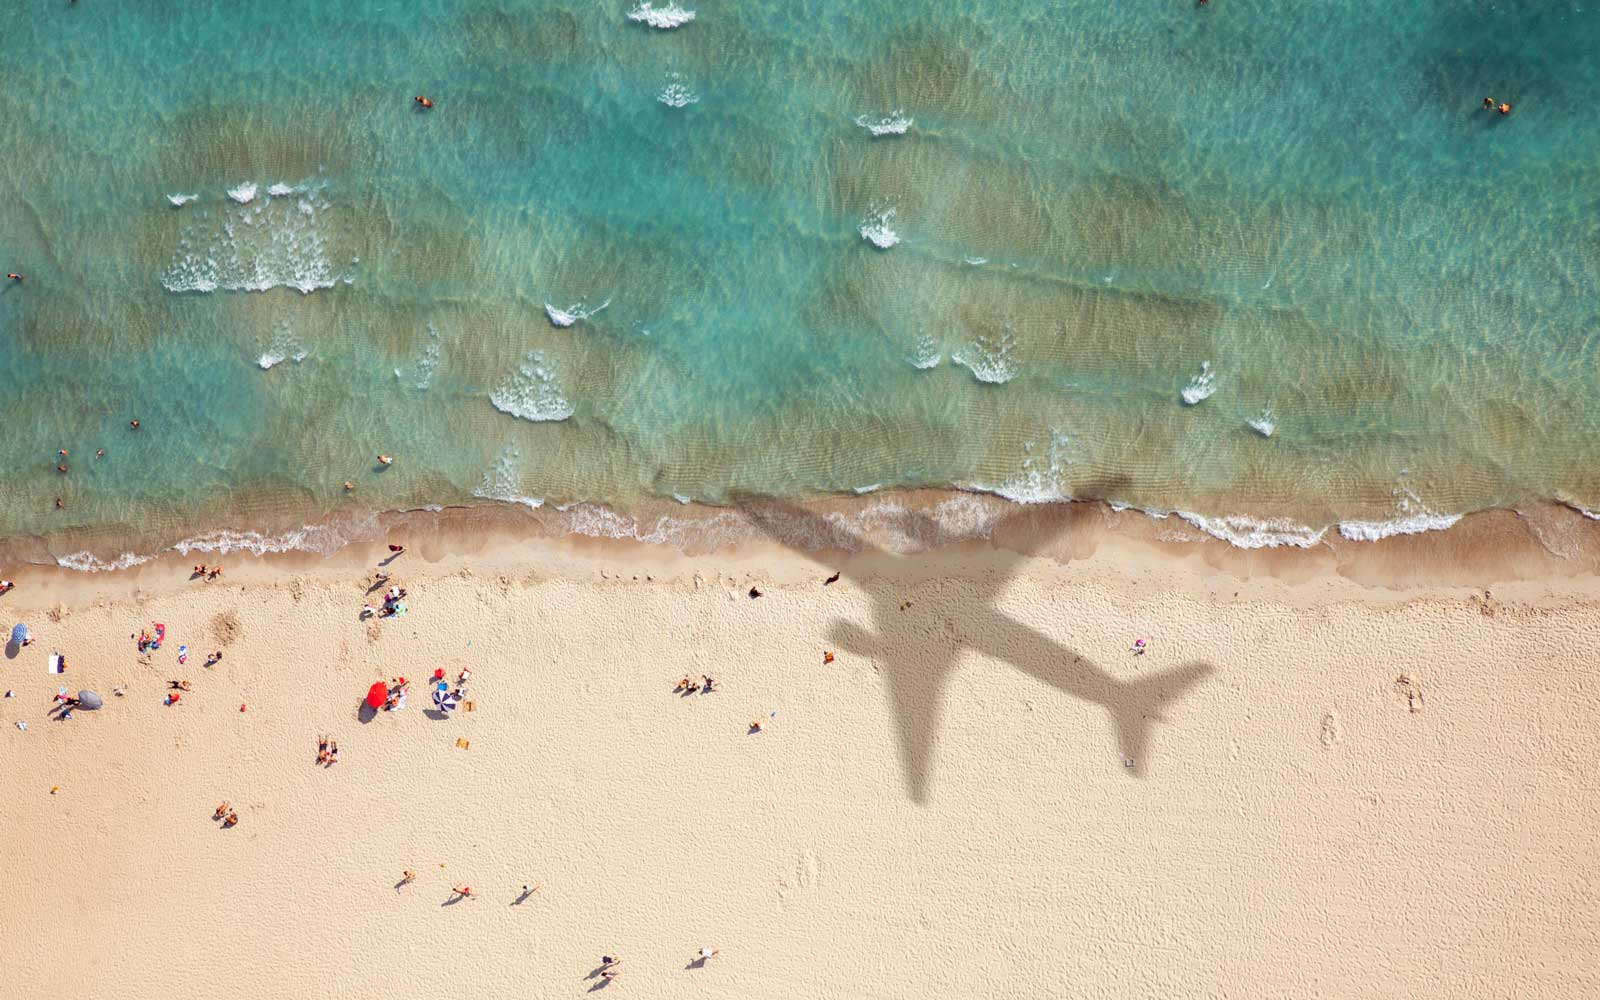 Plane flying over beach